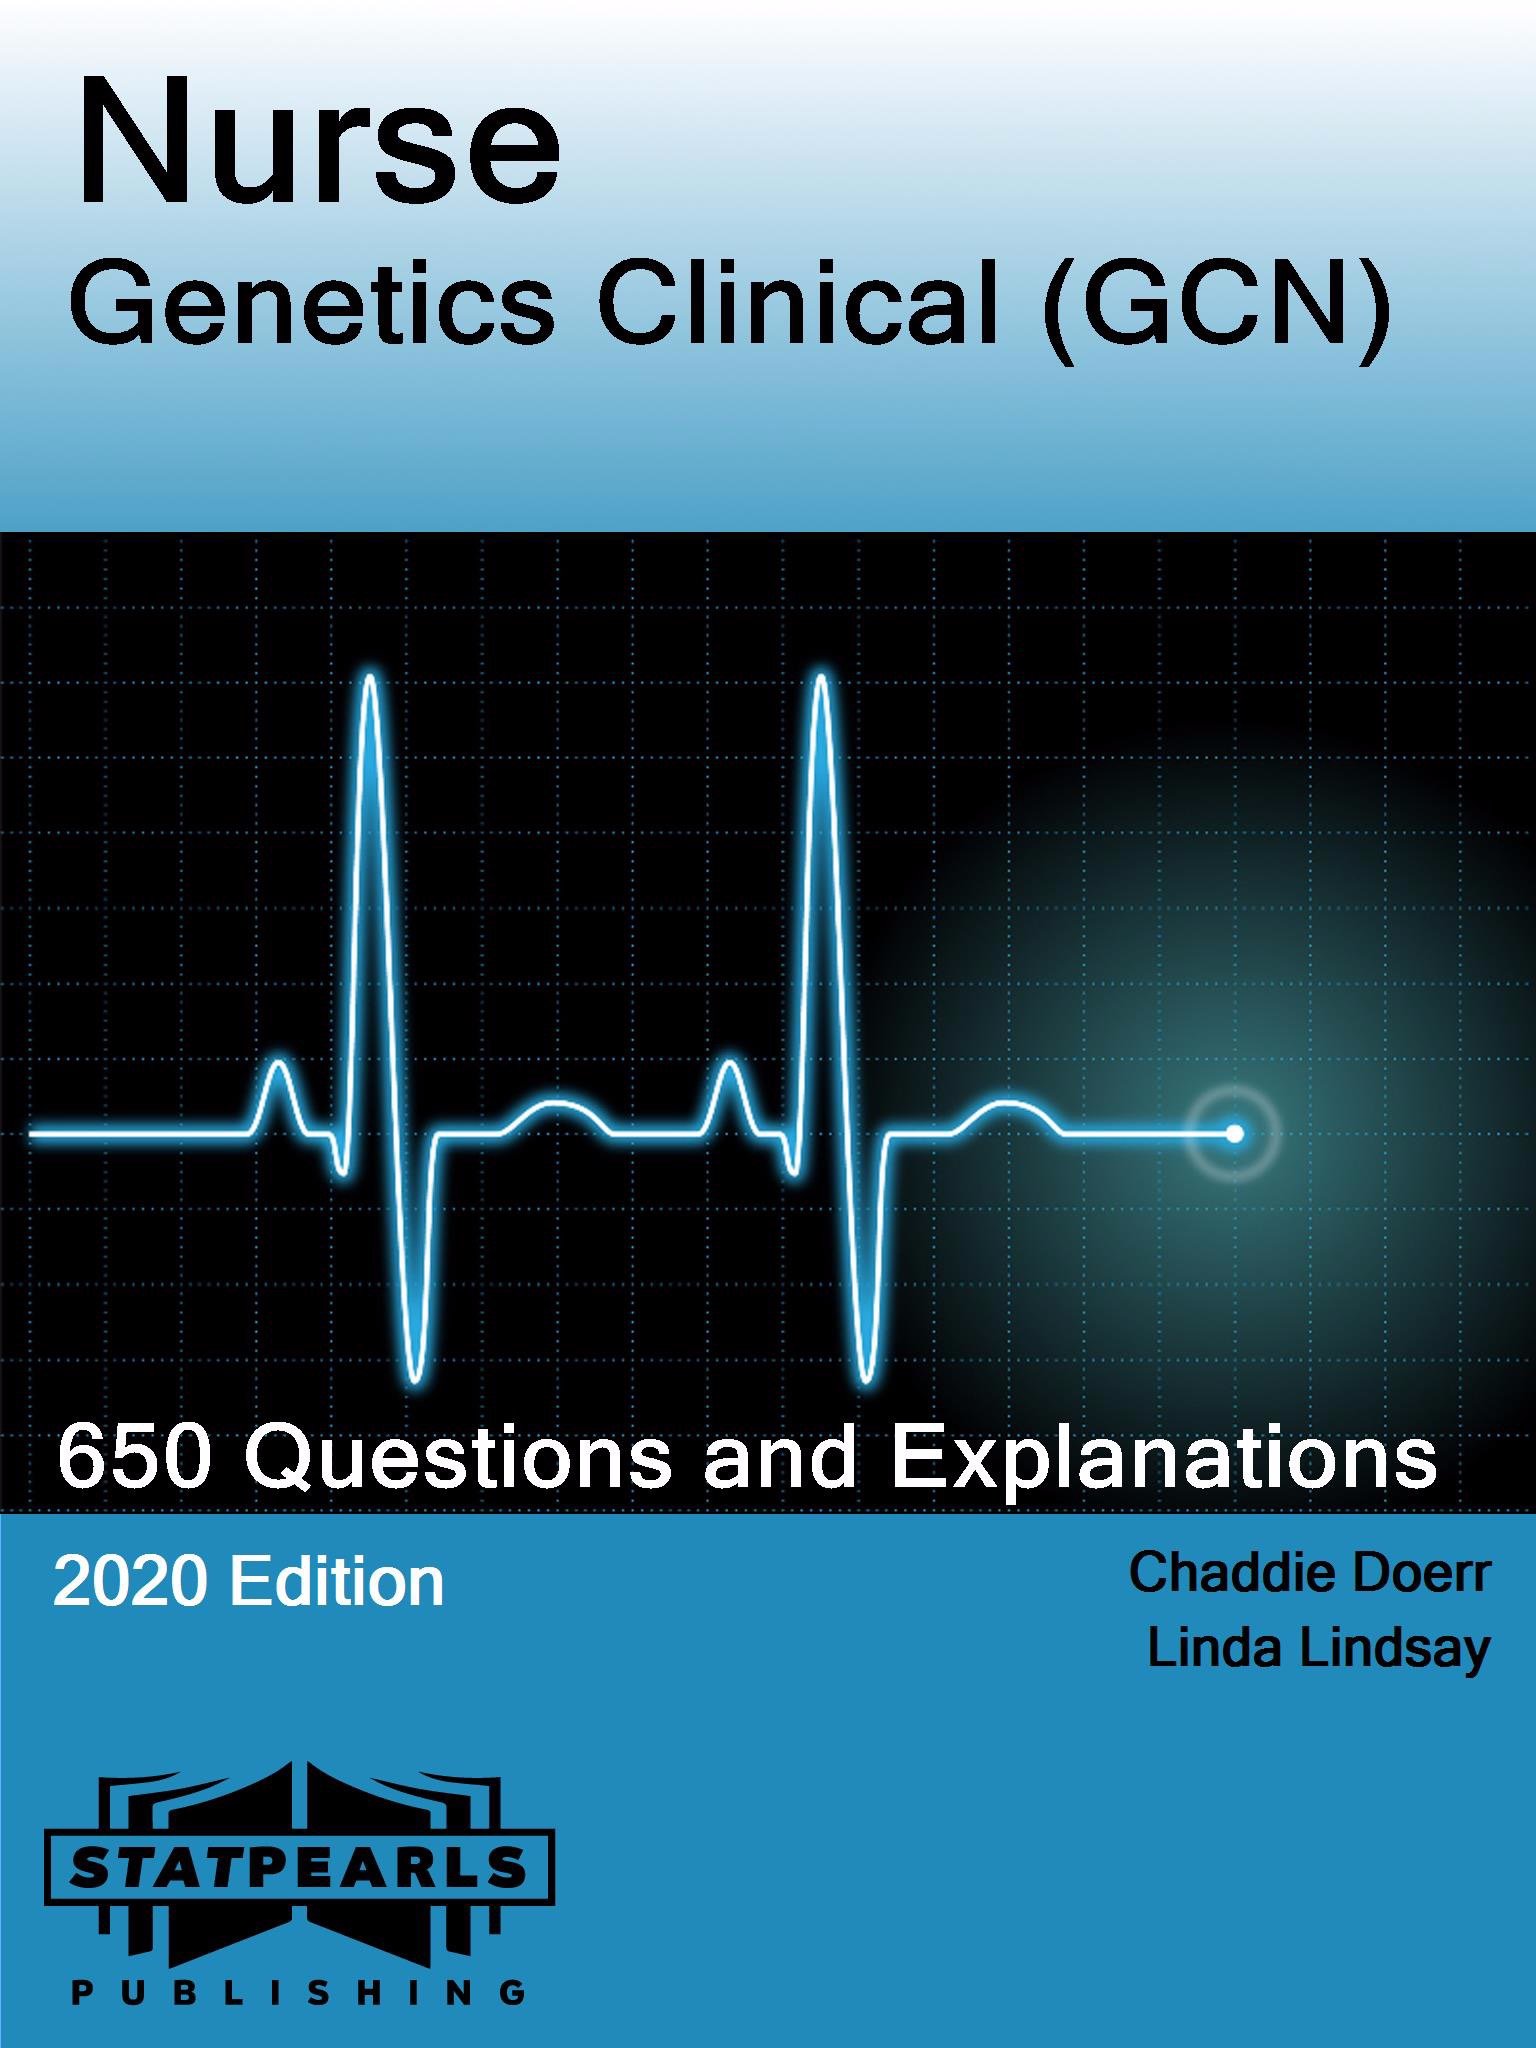 Nurse Genetics Clinical (GCN)